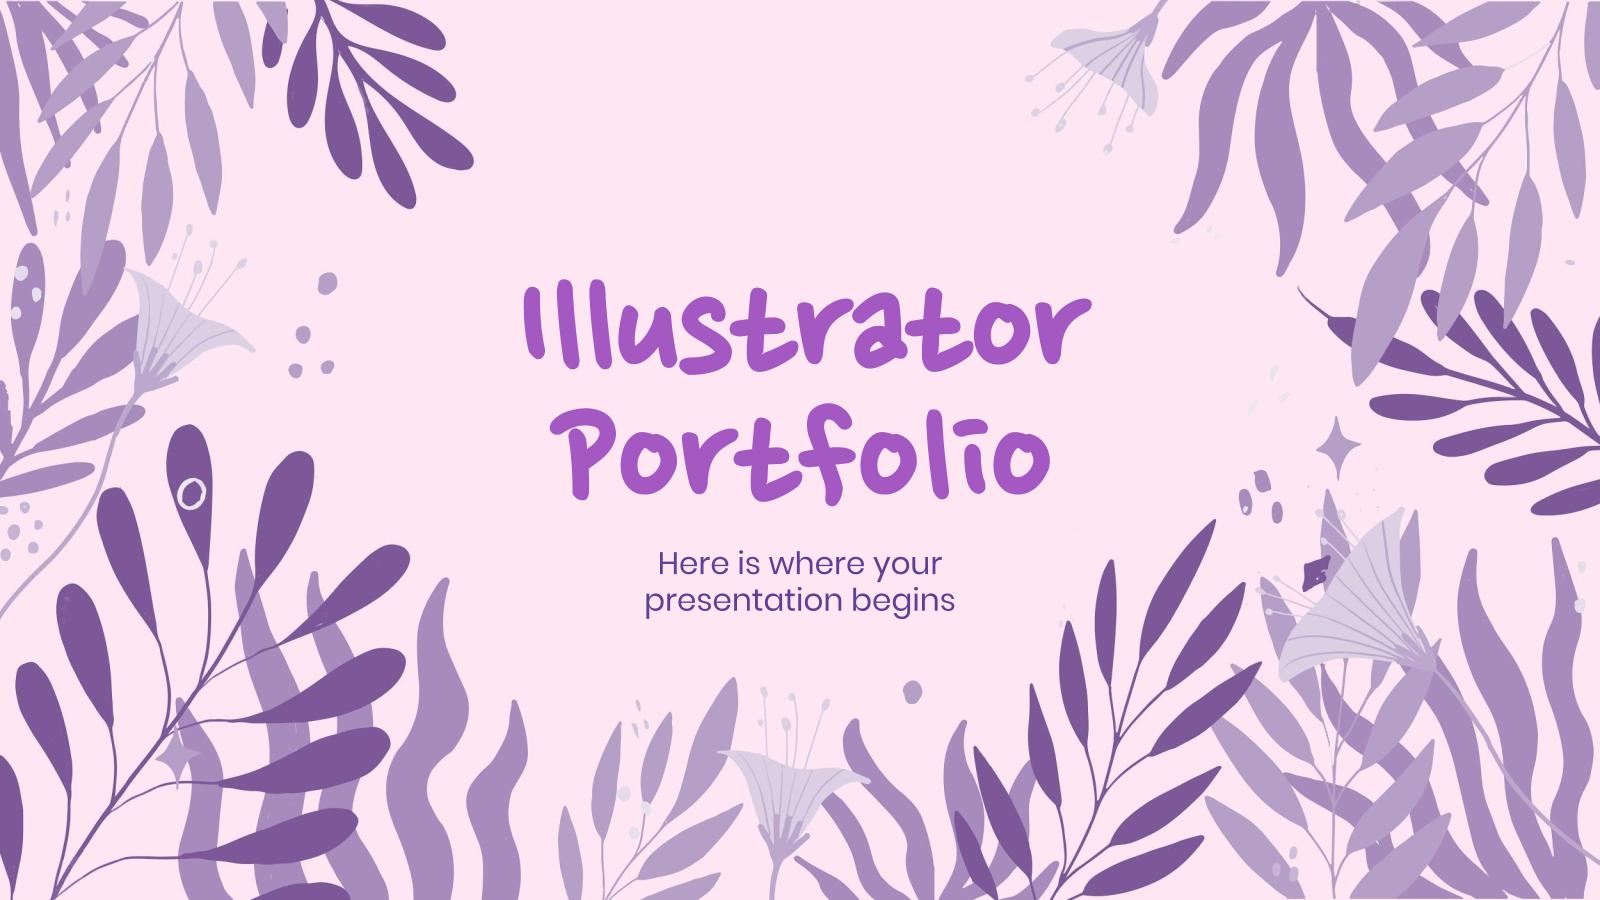 Illustrator Portfolio presentation template